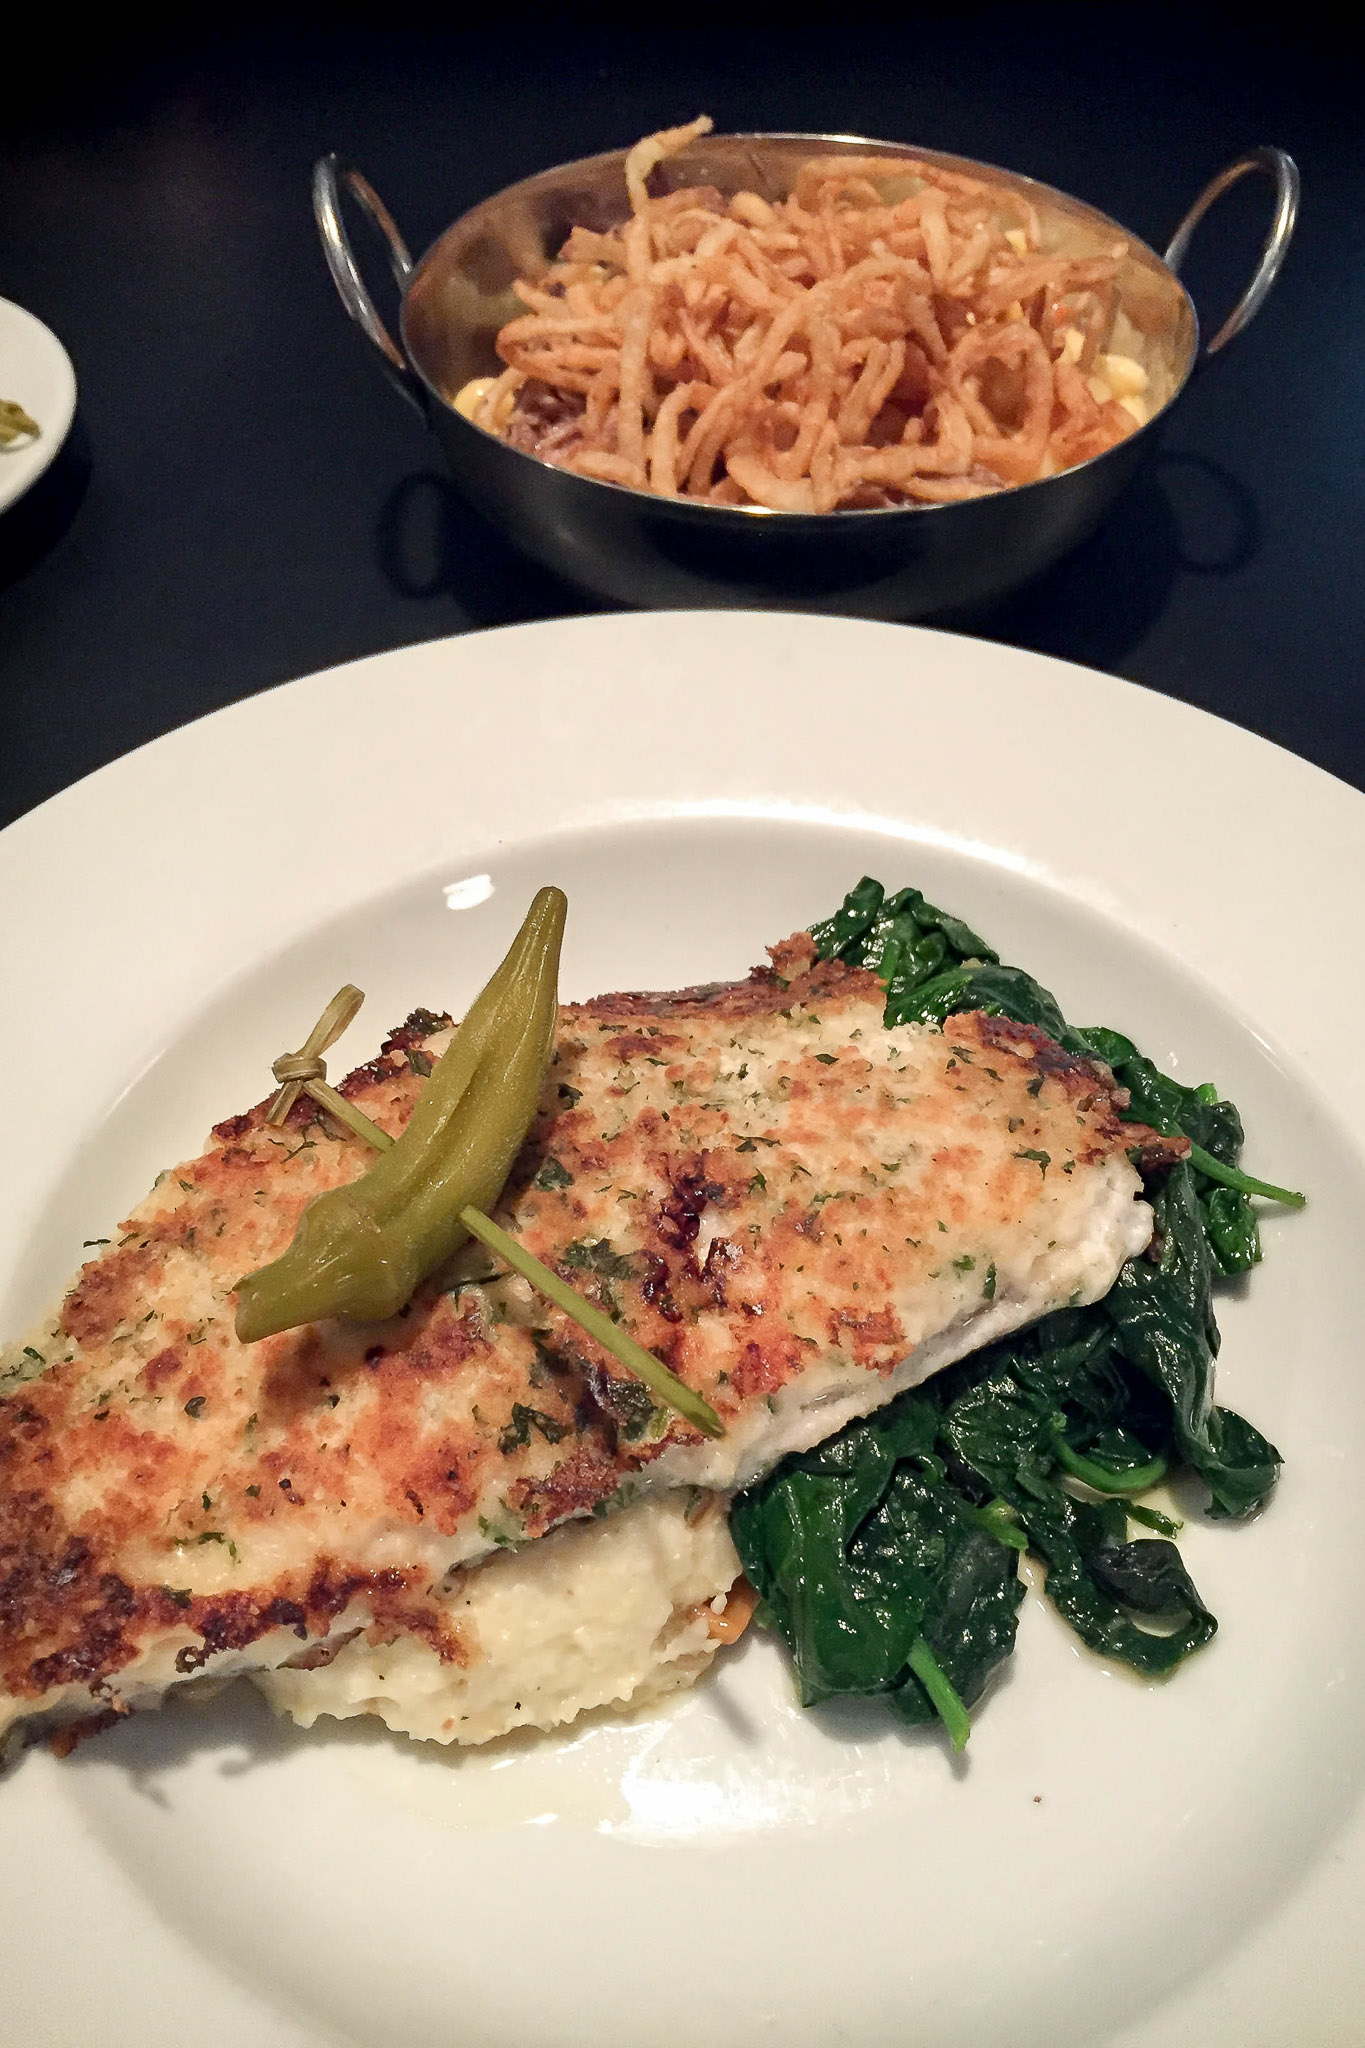 Trout // Mac & cheese (Sorry there's not a closer picture of the mac & cheese…it disappeared)